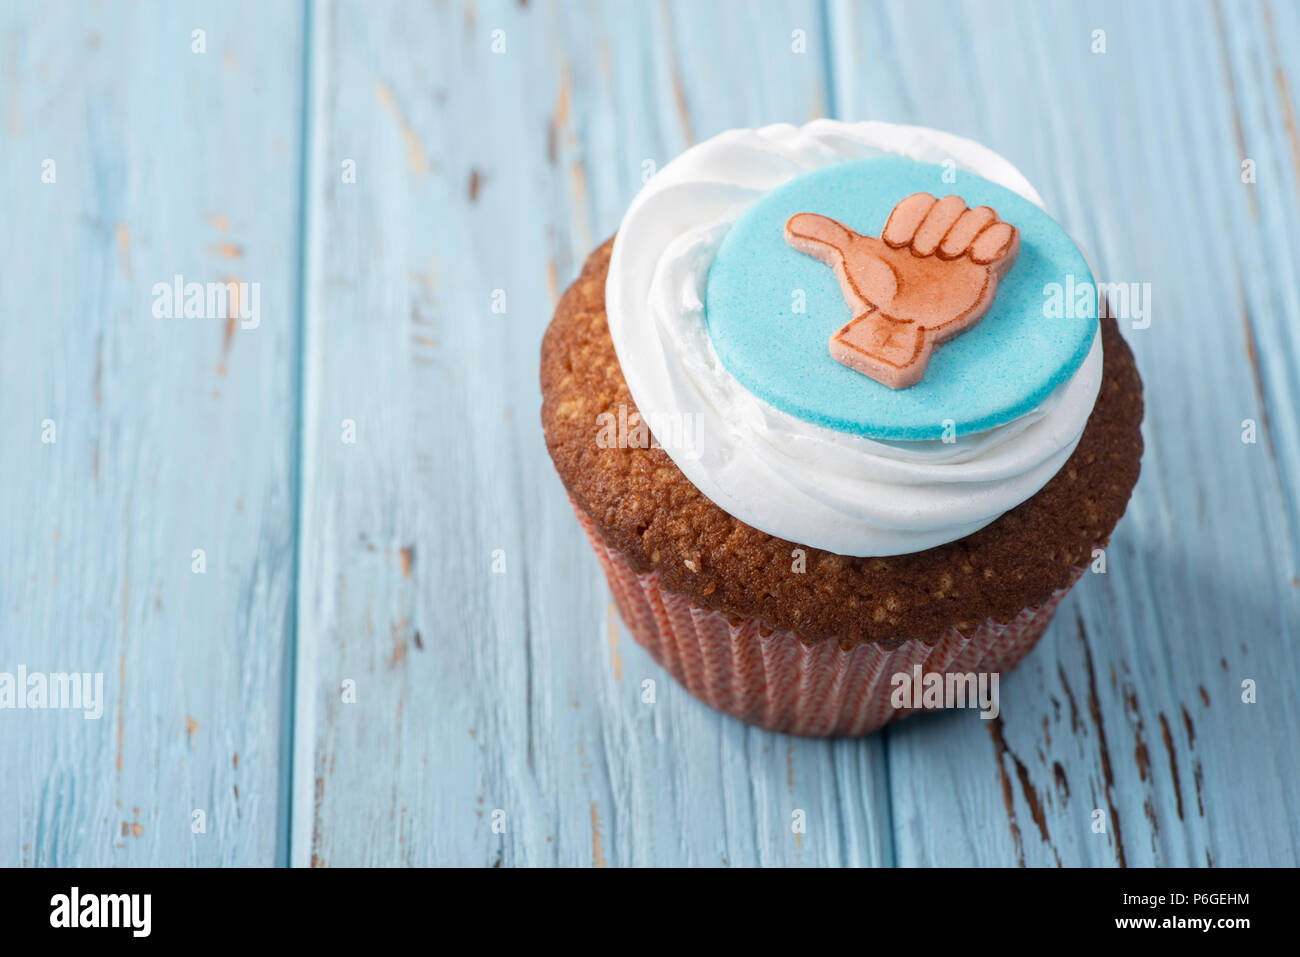 Tasty cake on blue wooden table, thumb up Stock Photo